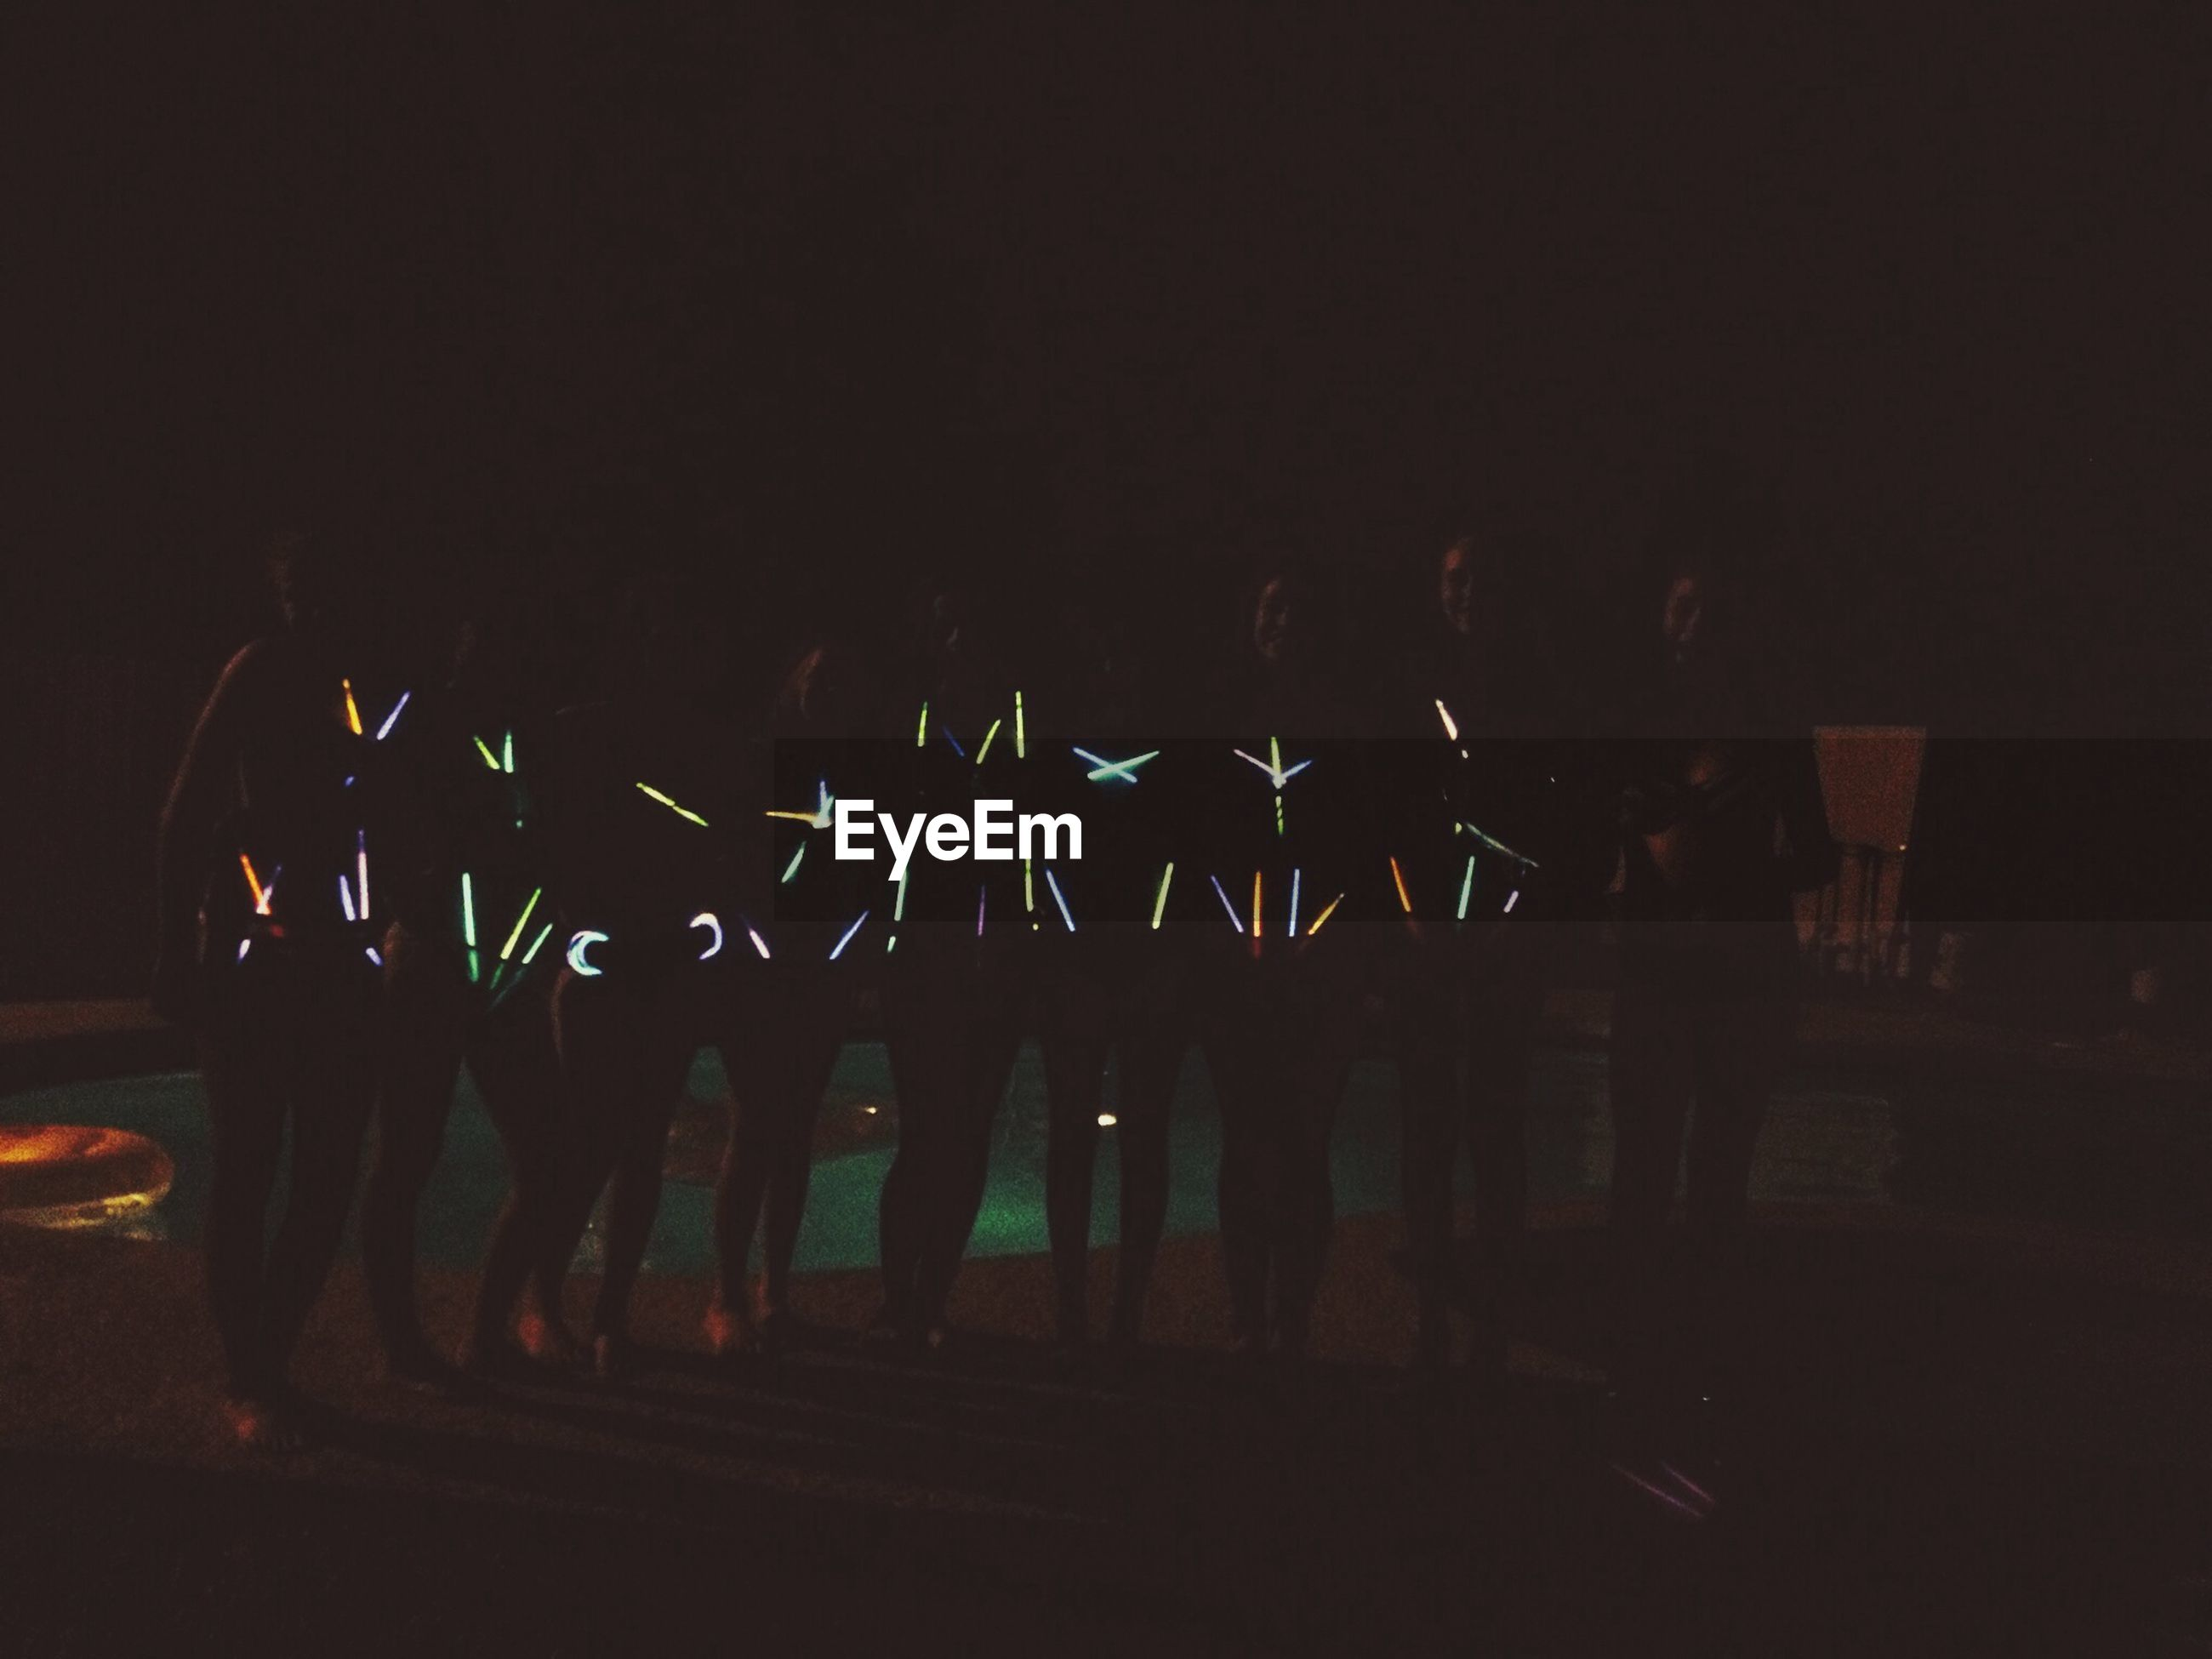 night, illuminated, arts culture and entertainment, men, dark, silhouette, lifestyles, large group of people, leisure activity, copy space, person, glowing, light - natural phenomenon, outdoors, event, fire - natural phenomenon, group of people, motion, standing